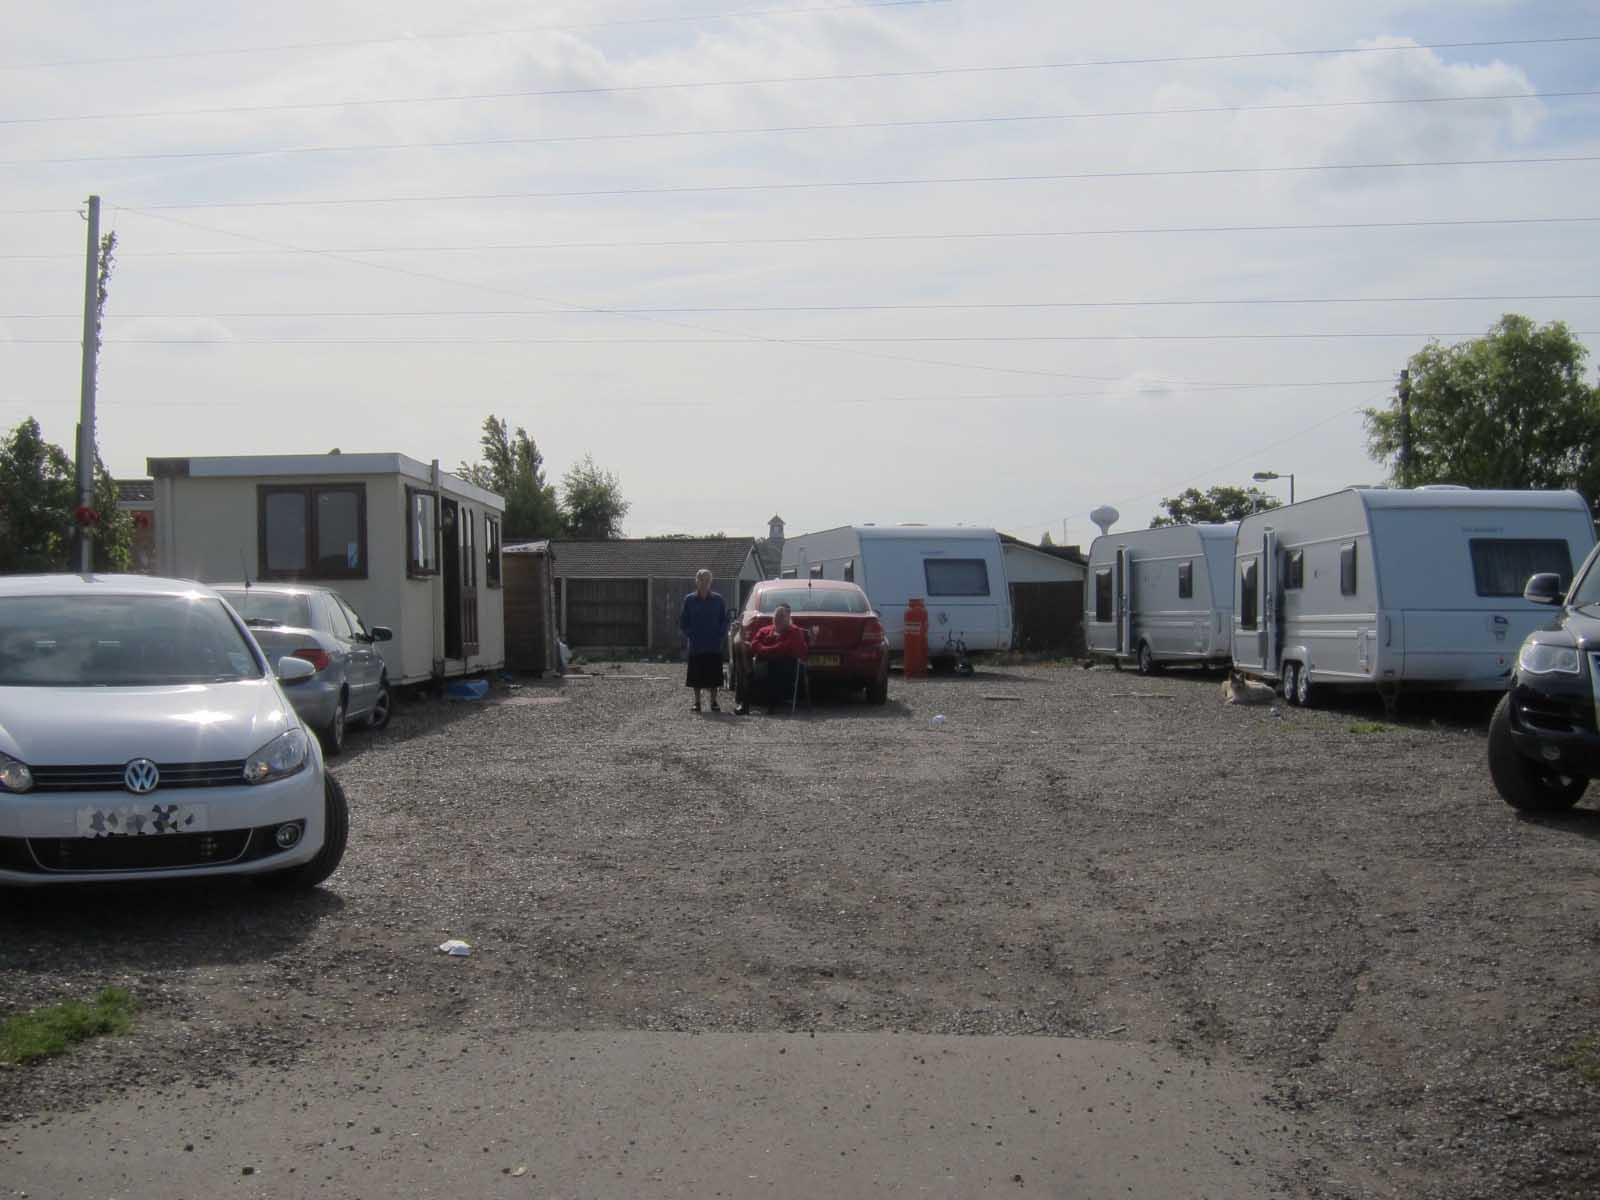 Maidstone Traveller's Camp Dale-Farm_UK_Protest-Camp-against-eviction-06_deconcrete2011.jpg